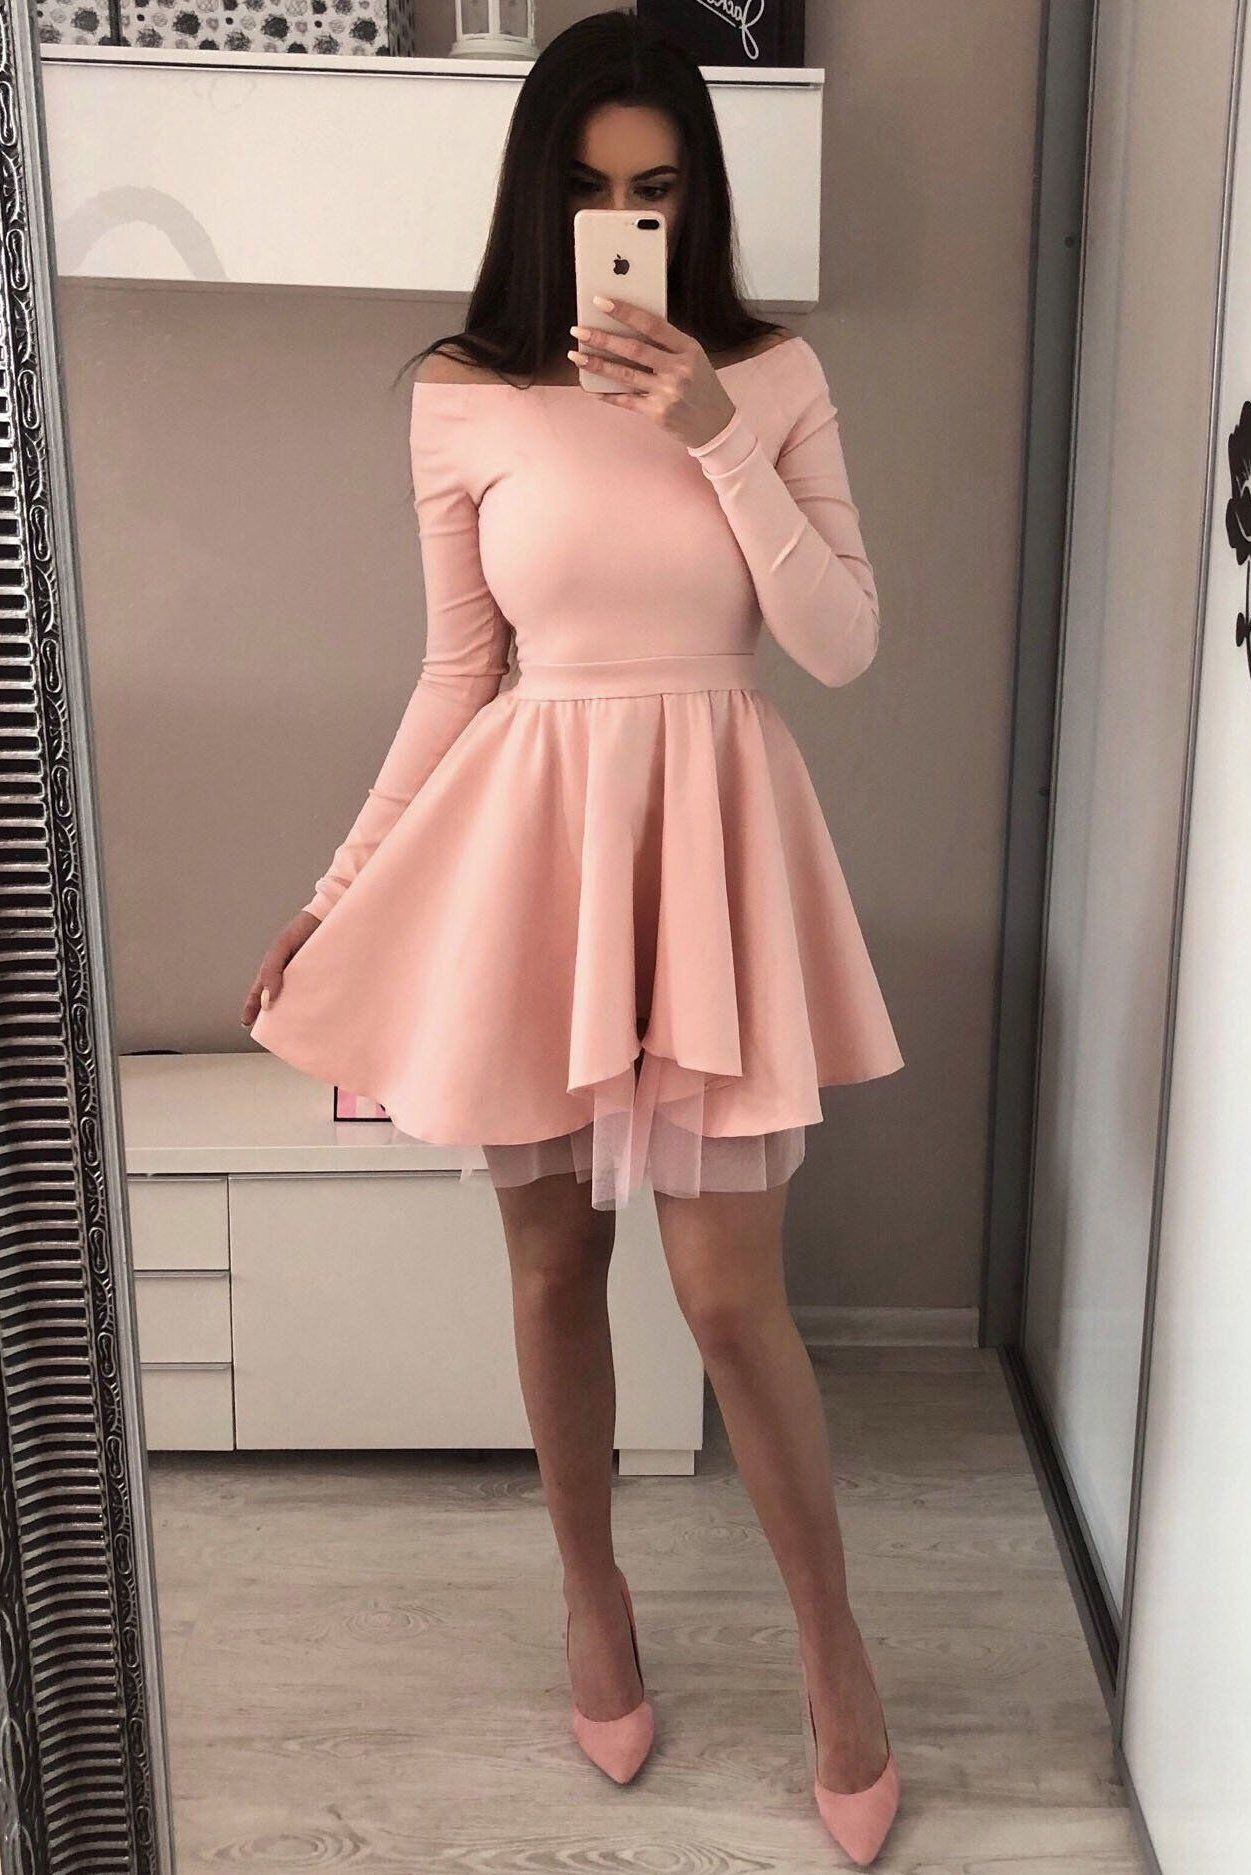 Long Sleeves Pink A Line Short Homecoming Dresses For Teens Party Dresses Z2059 Homecoming Dresses Short Homecoming Dresses Party Dress Teens [ 1875 x 1251 Pixel ]